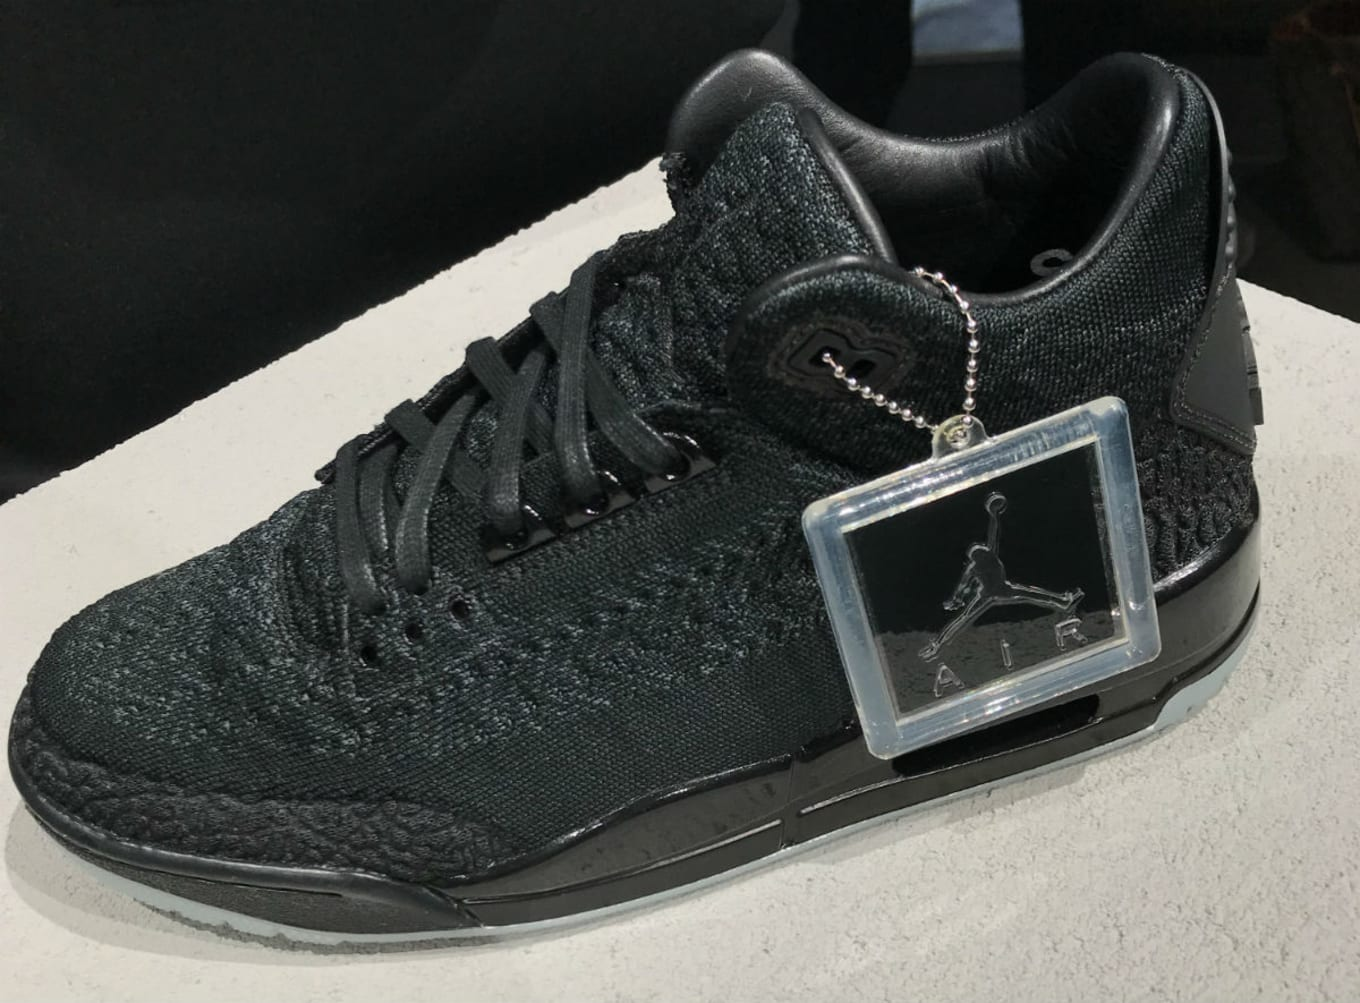 reputable site e2506 e69bb Air Jordan 3 III Flyknit Black Release Date AQ1005-001 ...